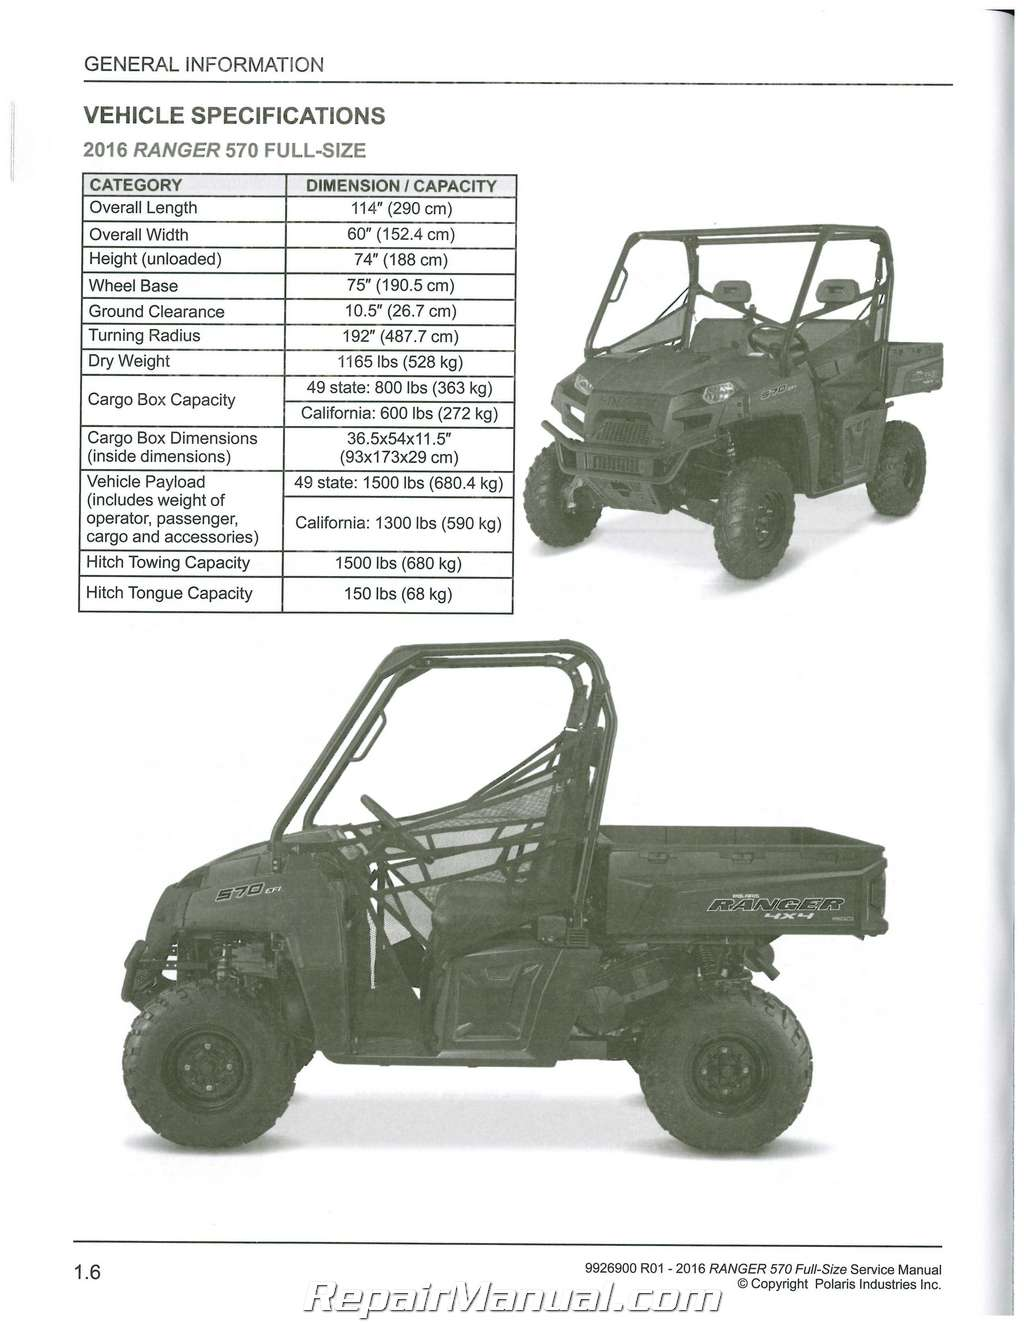 2016 Polaris Ranger 570 Atv Service Manual